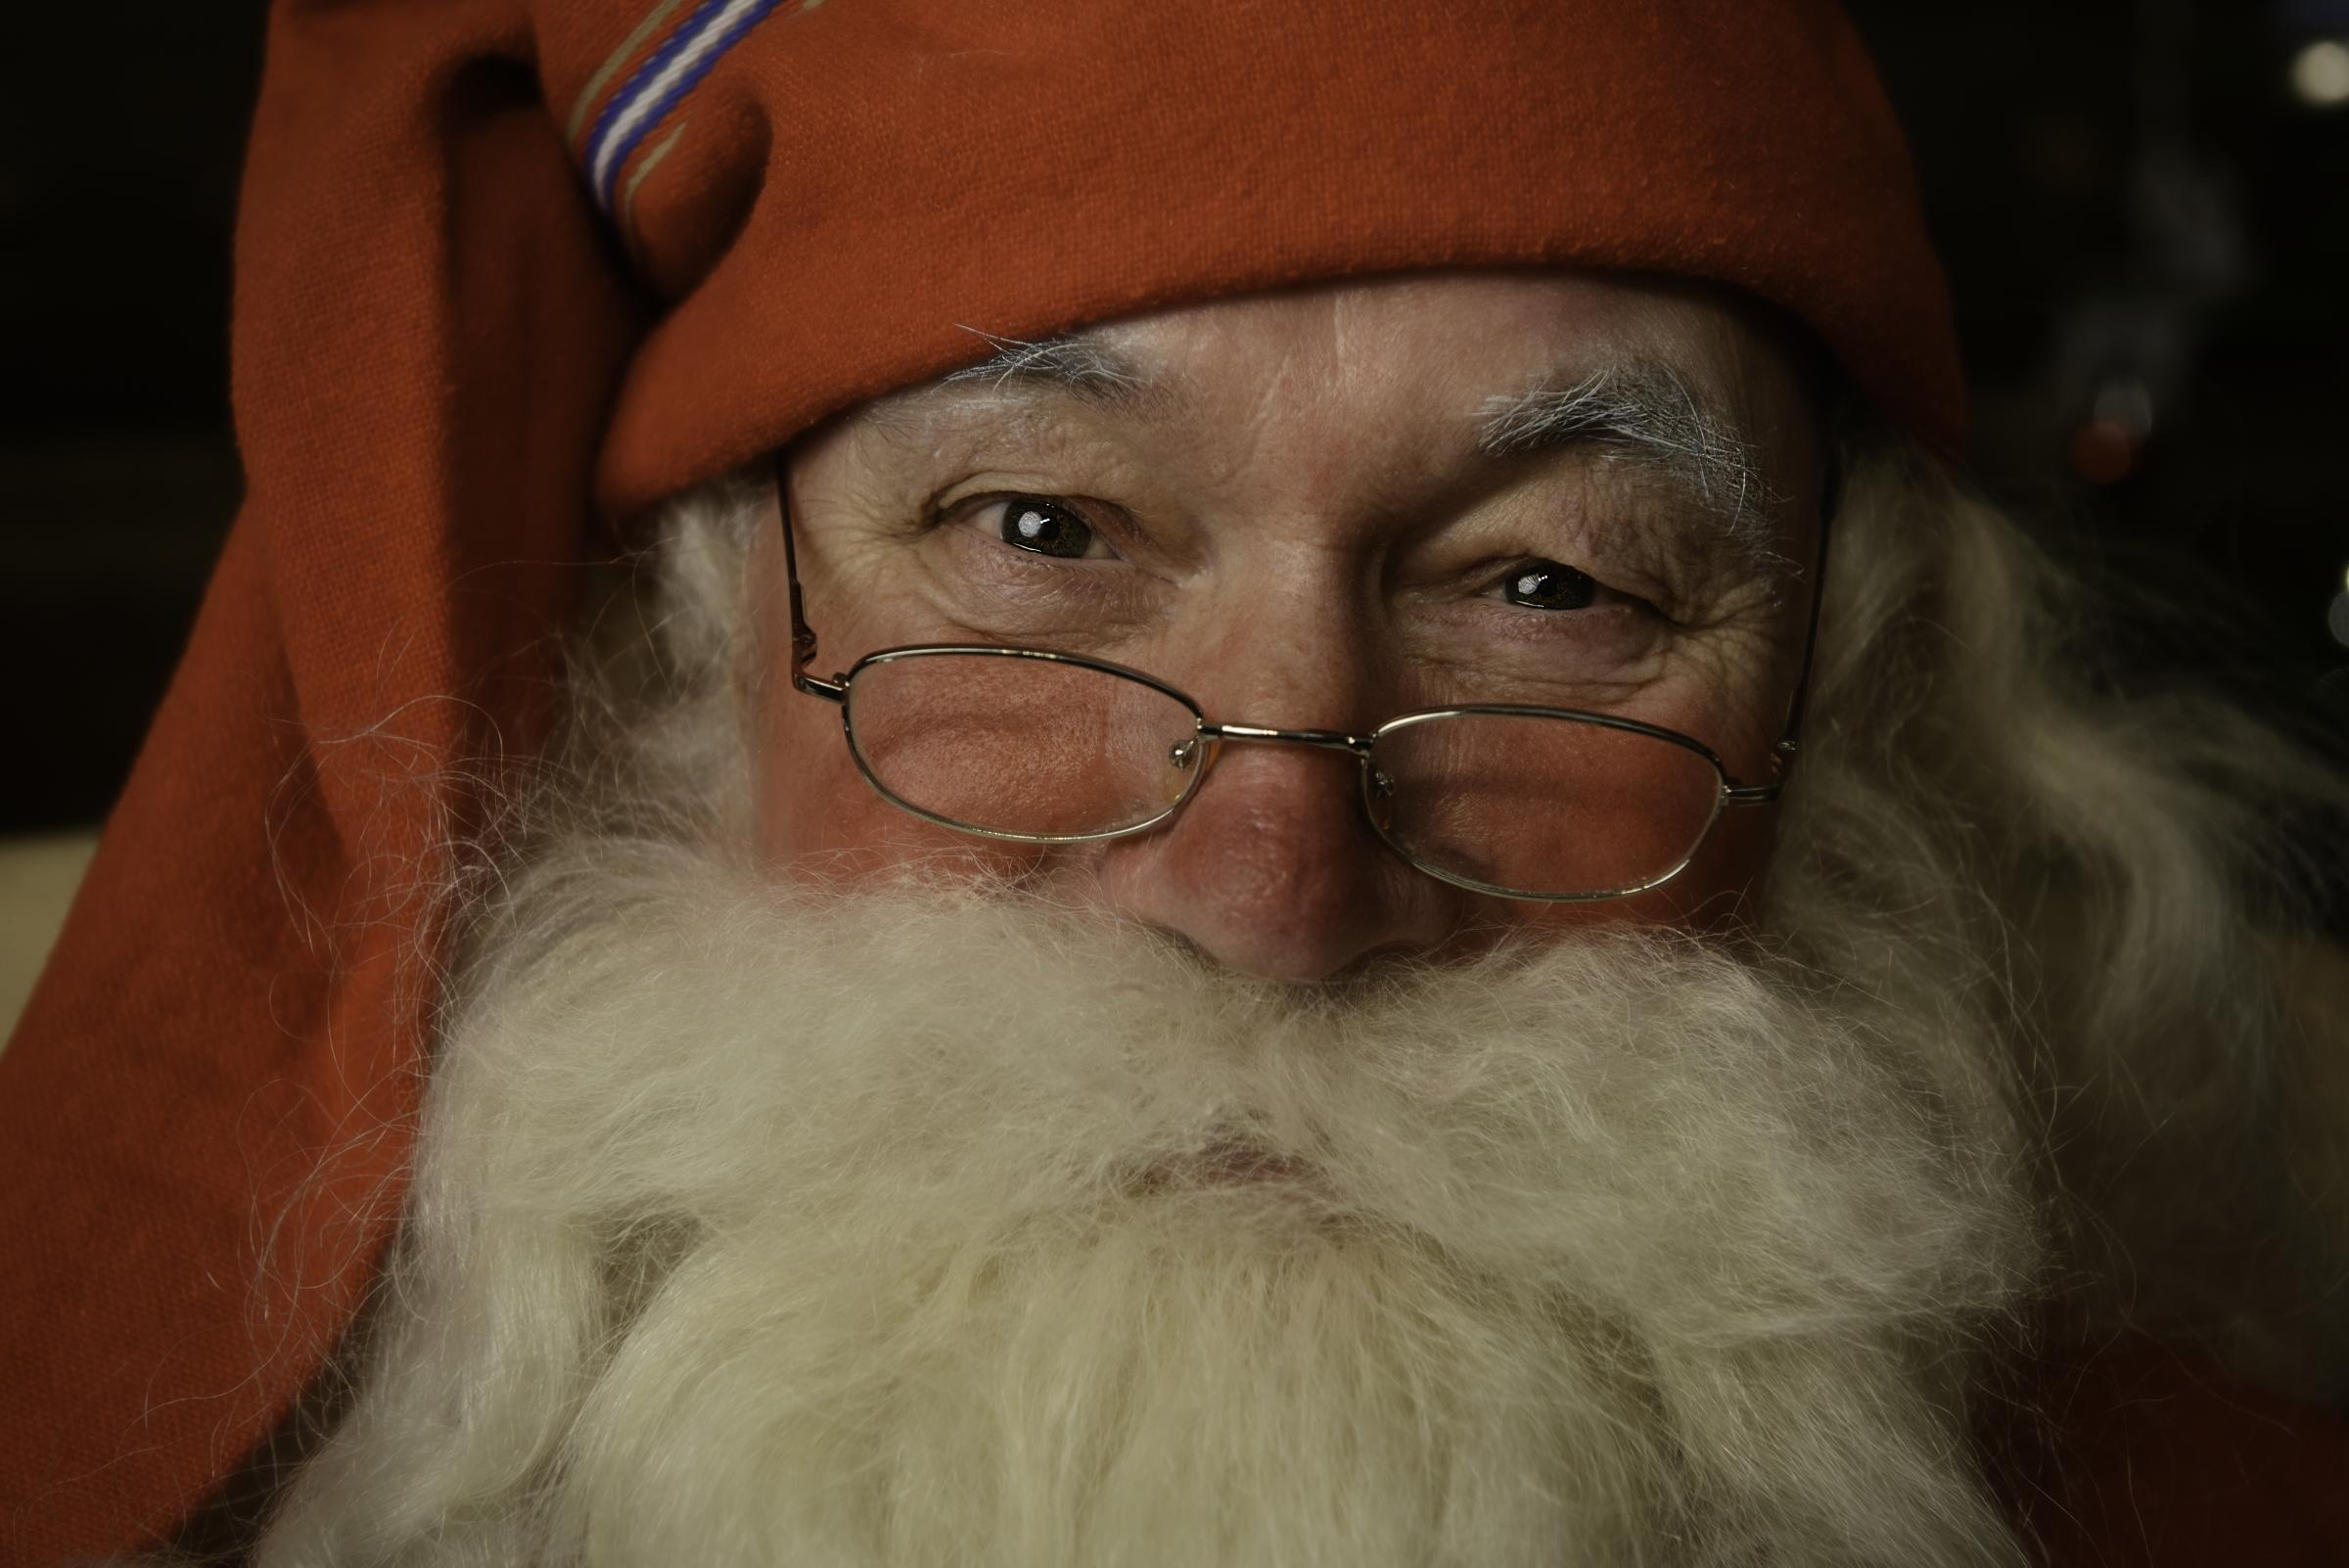 Don't tell the kids: Oxford scientists may have found Father Christmas's bones